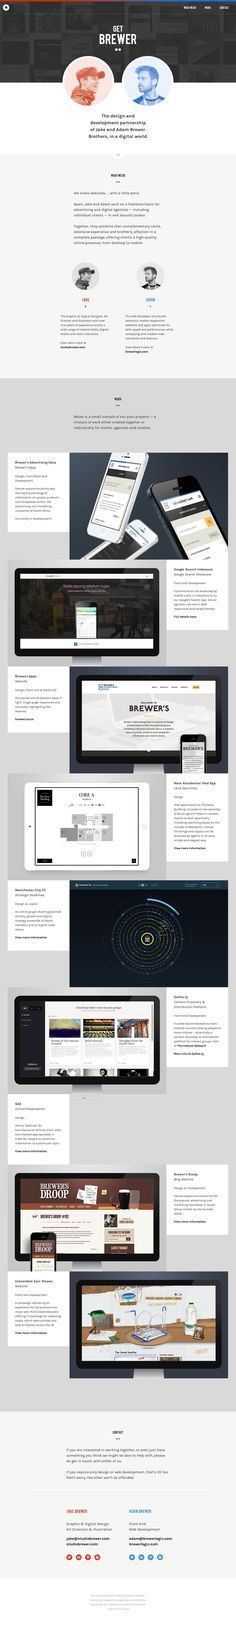 Responsive one pager for 'Get Brewer' - a design and development partnership of brothers, Jake and Adam Brewer. Lovely touch with the gradient at the top of the page, consistent with the color scheme division between the brothers.